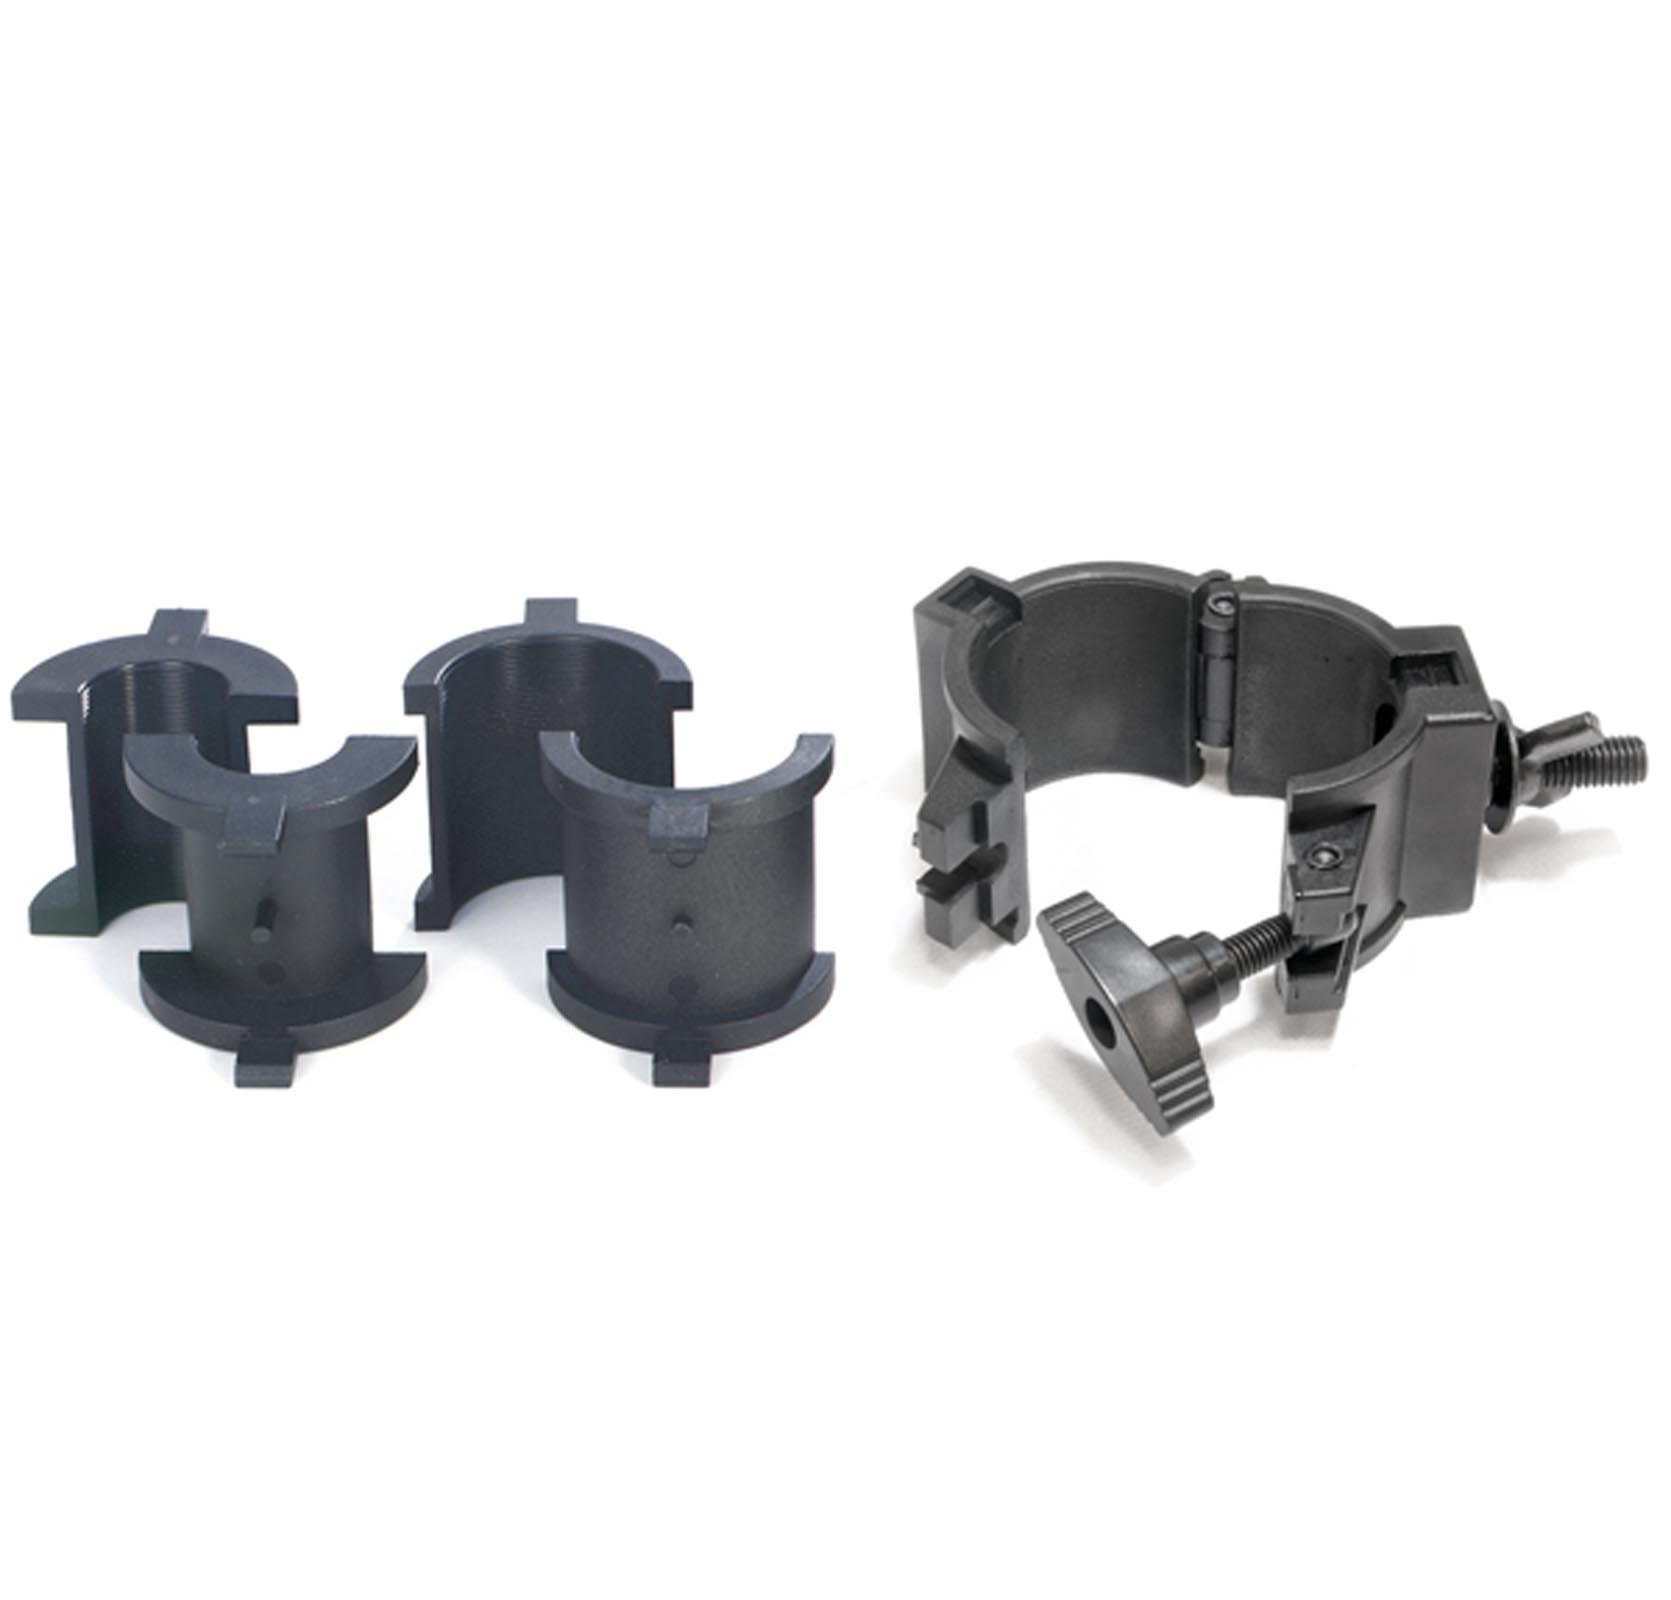 Chauvet 360° Wrap Around O-Clamps Truss Light Mounting - 75 lb Capacity (8 Pack)